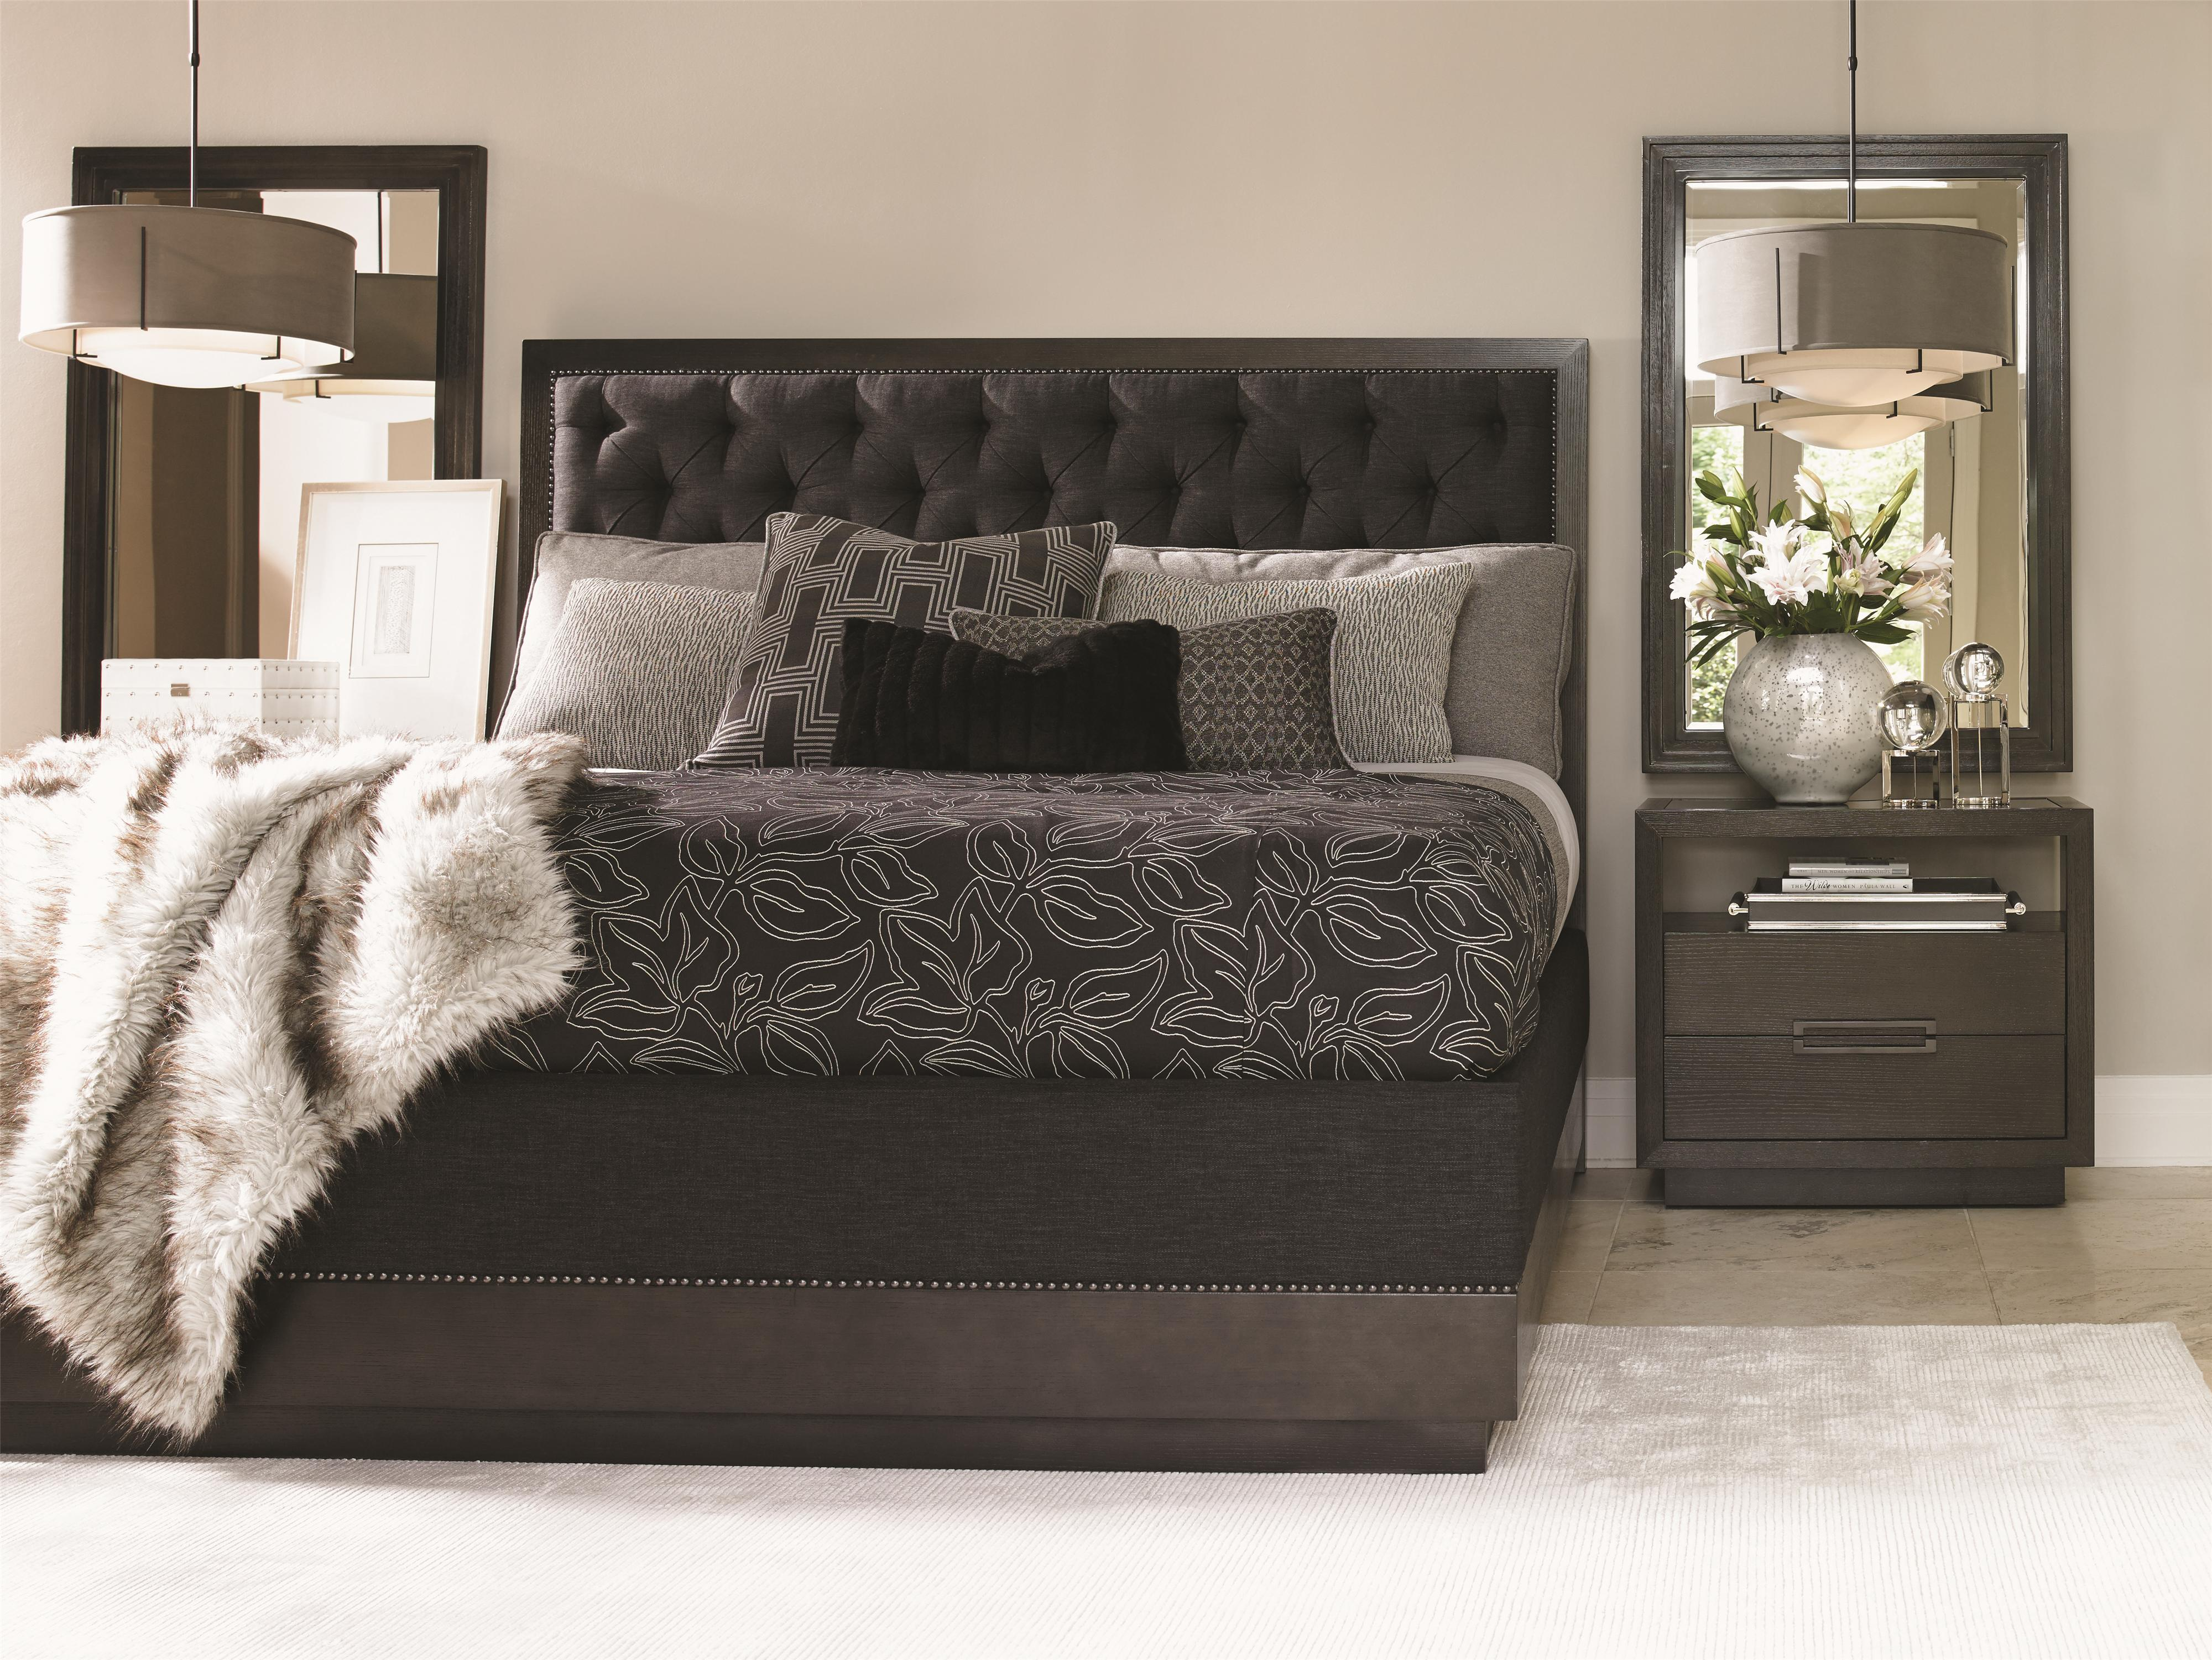 Carrera Bedroom Group by Lexington at Baer's Furniture